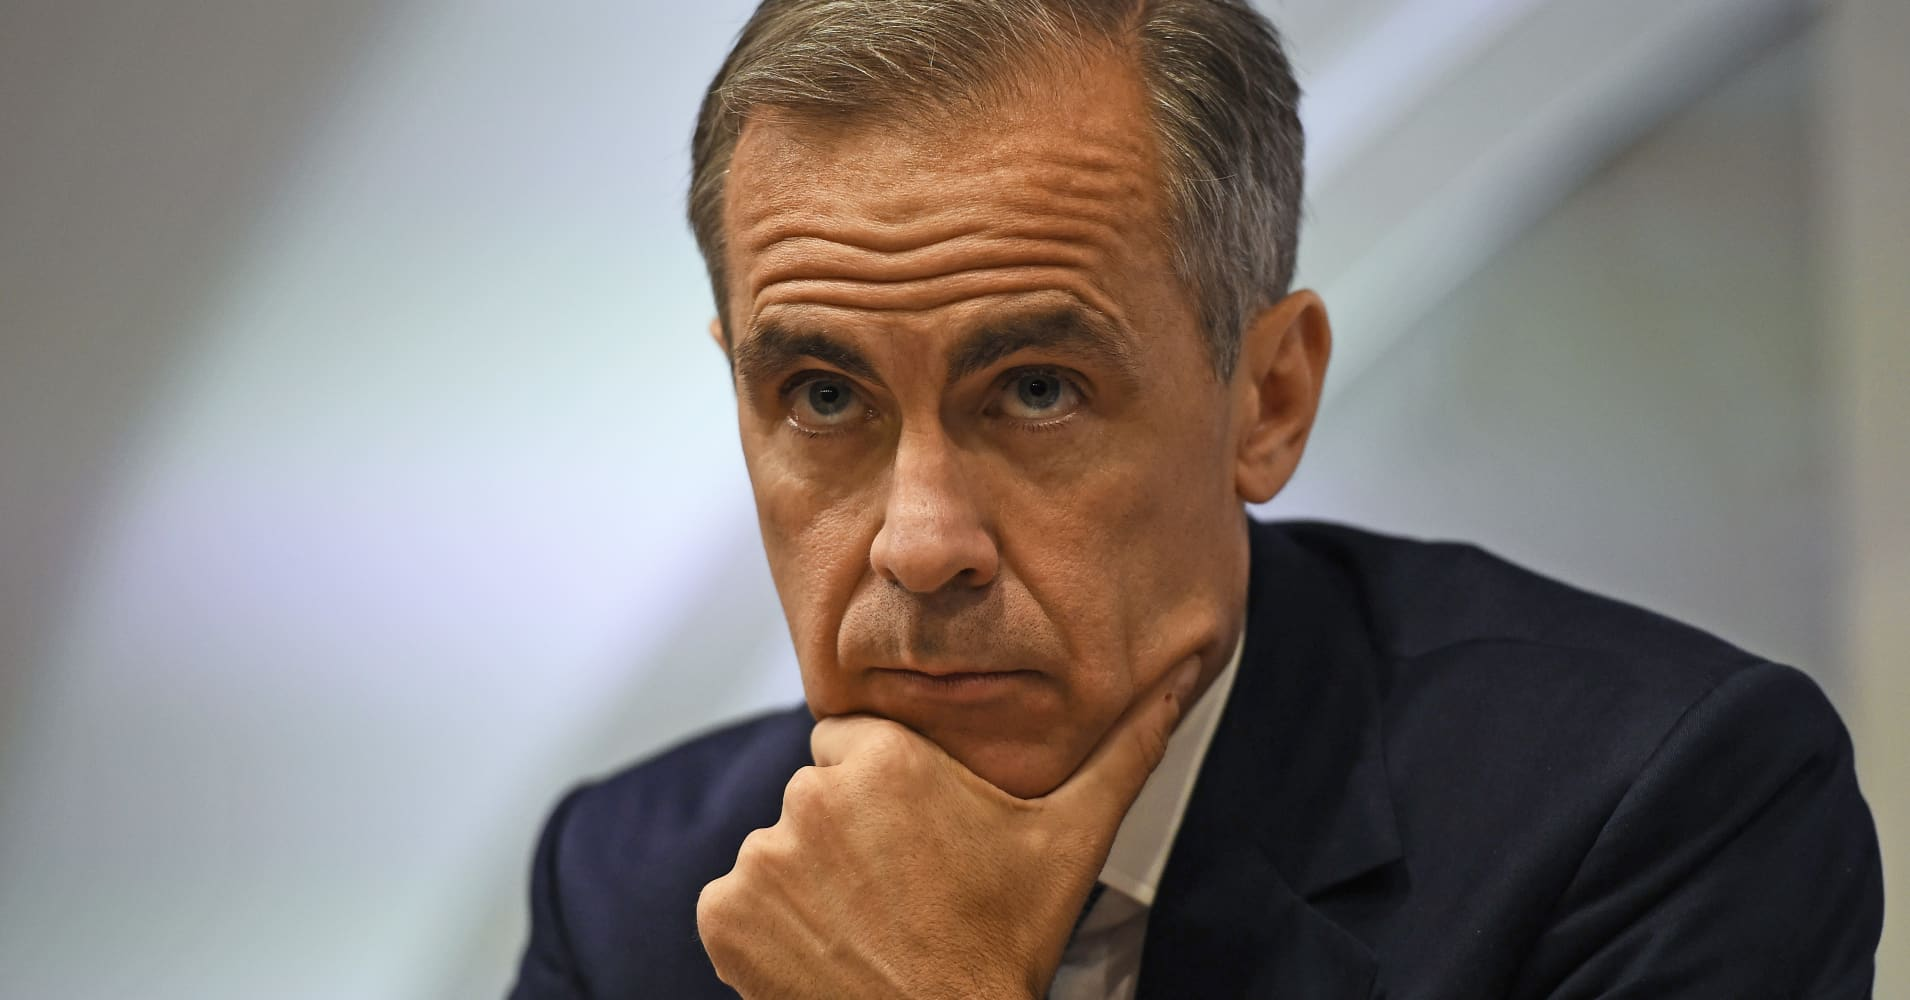 Bank of England raises capital requirements for UK banks by $14.5 billion